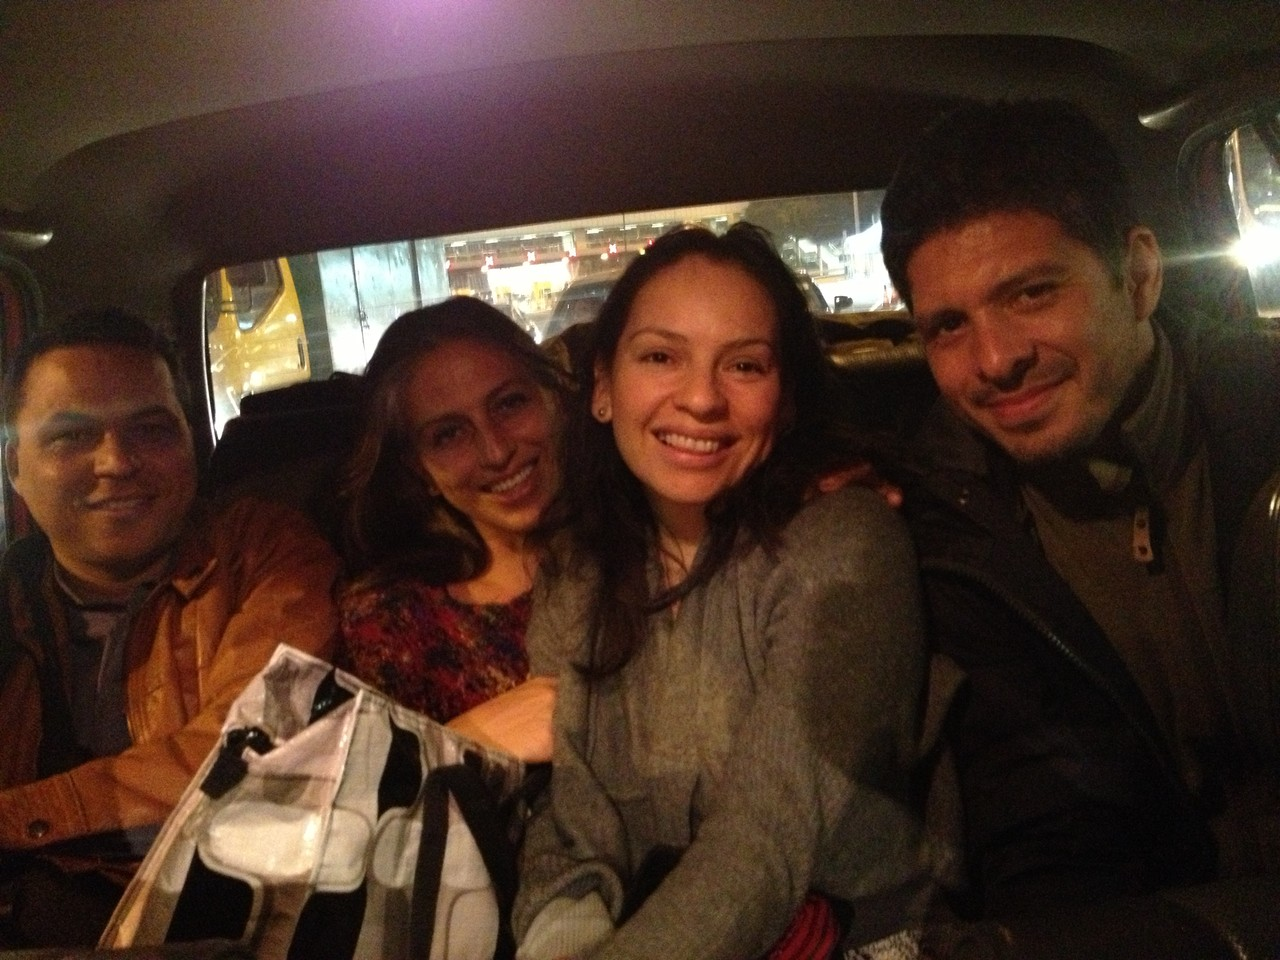 The four of us squash into a taxi and we drive to the nearest vegan restaurant ... — in Hong Kong, Hong Kong.